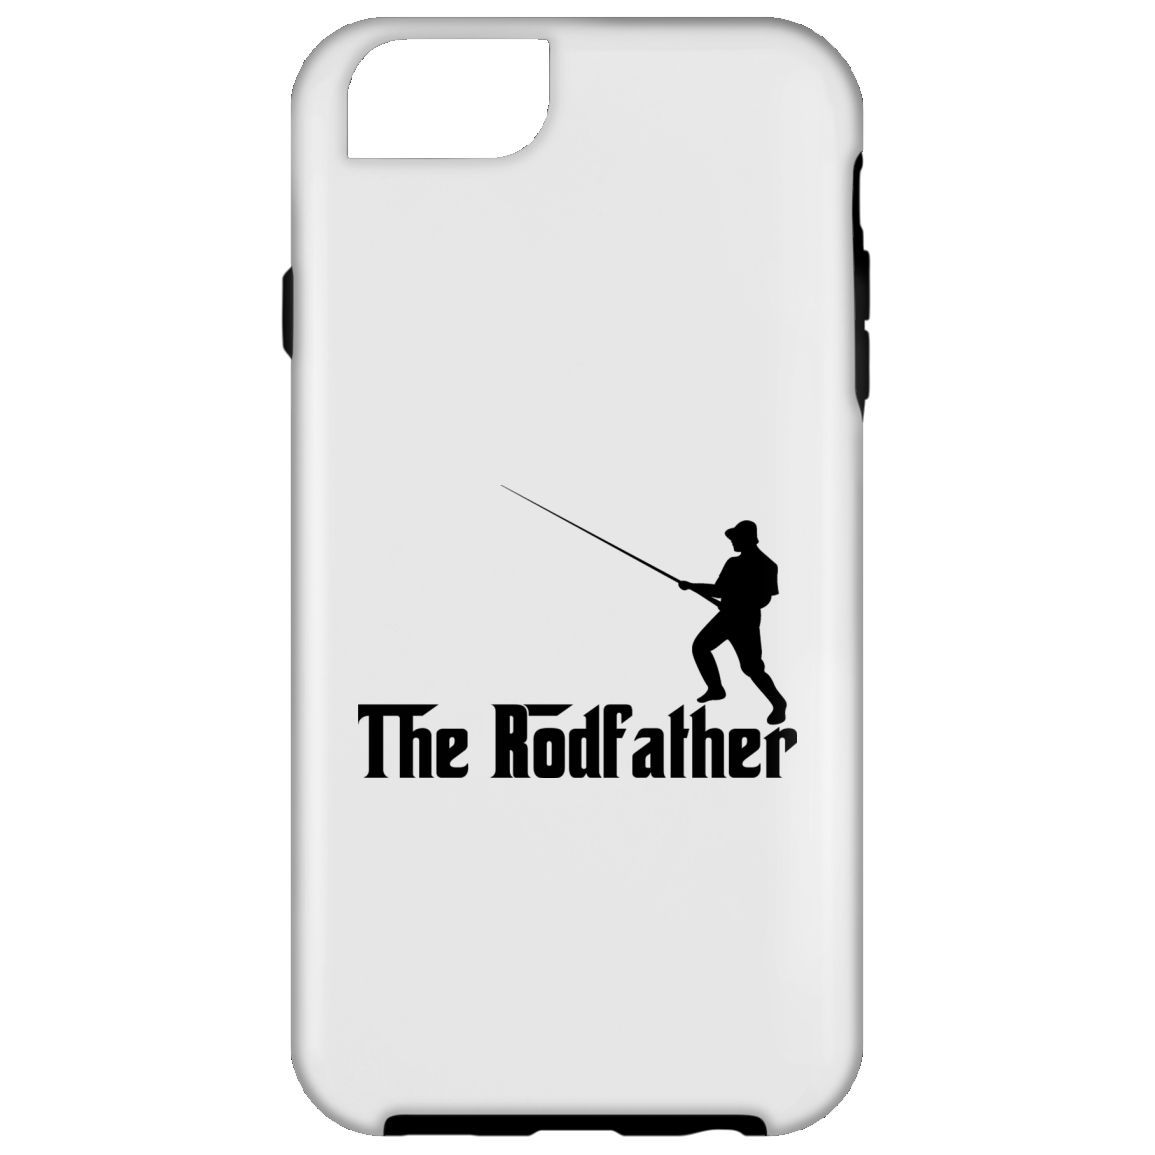 The Rodfather iPhone 6 Cases